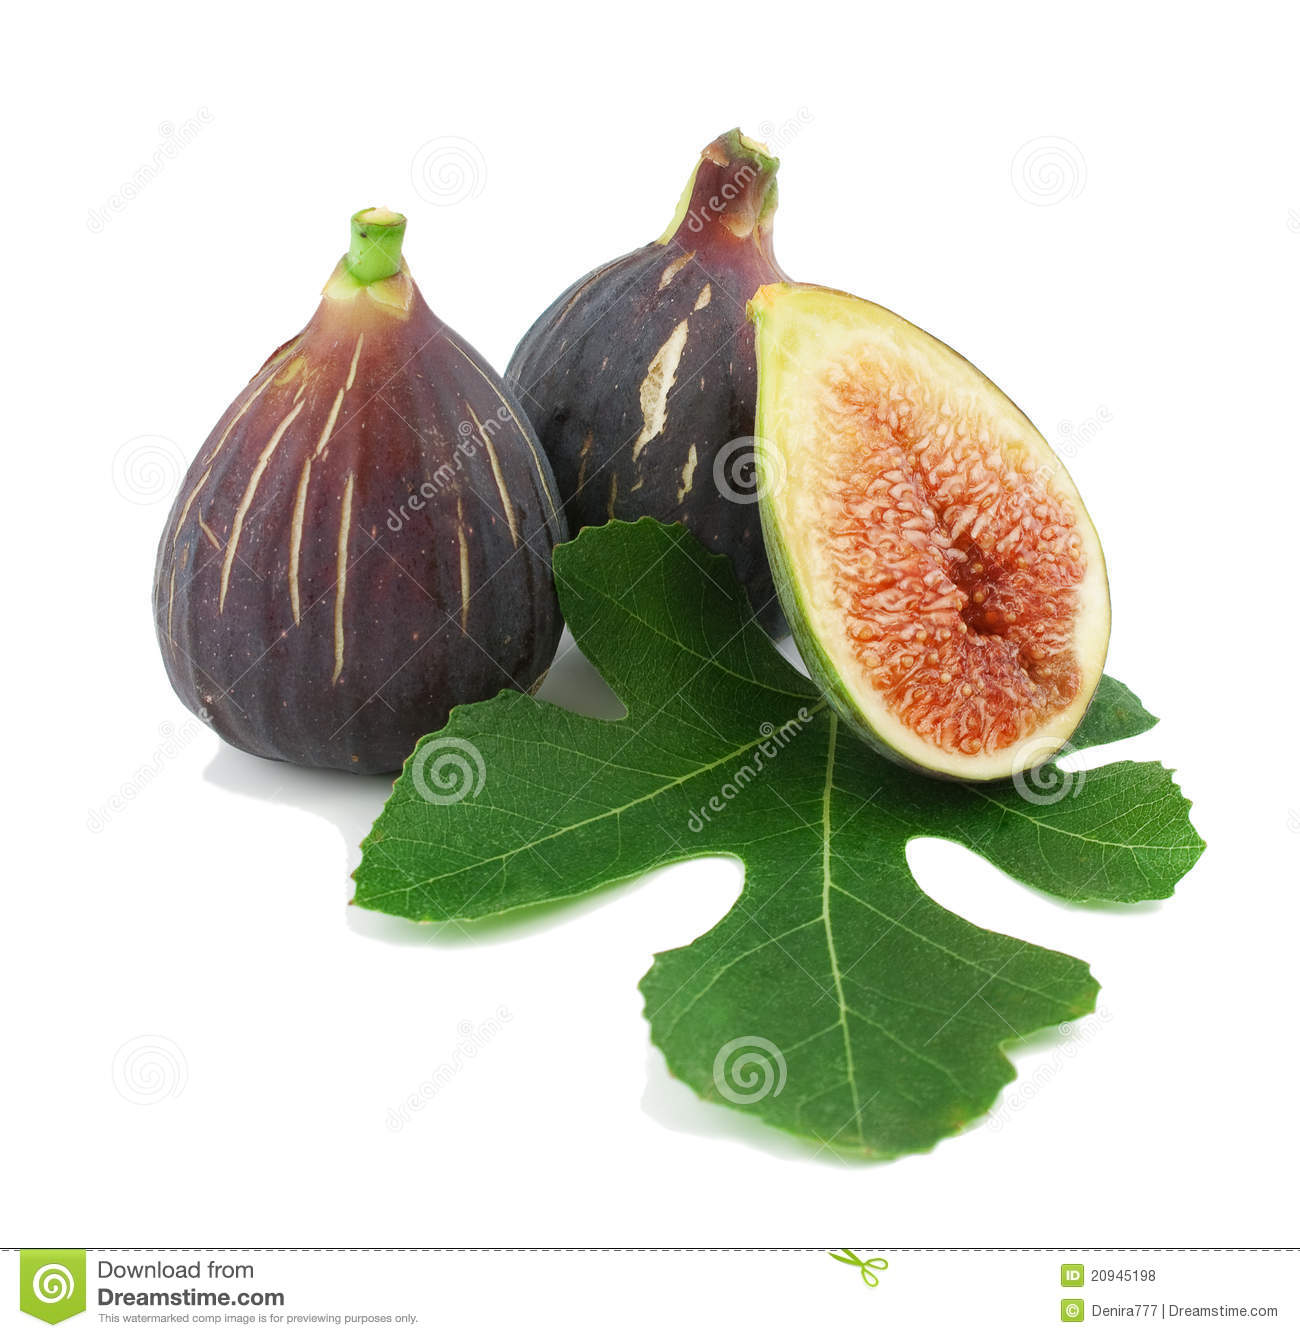 how to tell when a fig is ripe